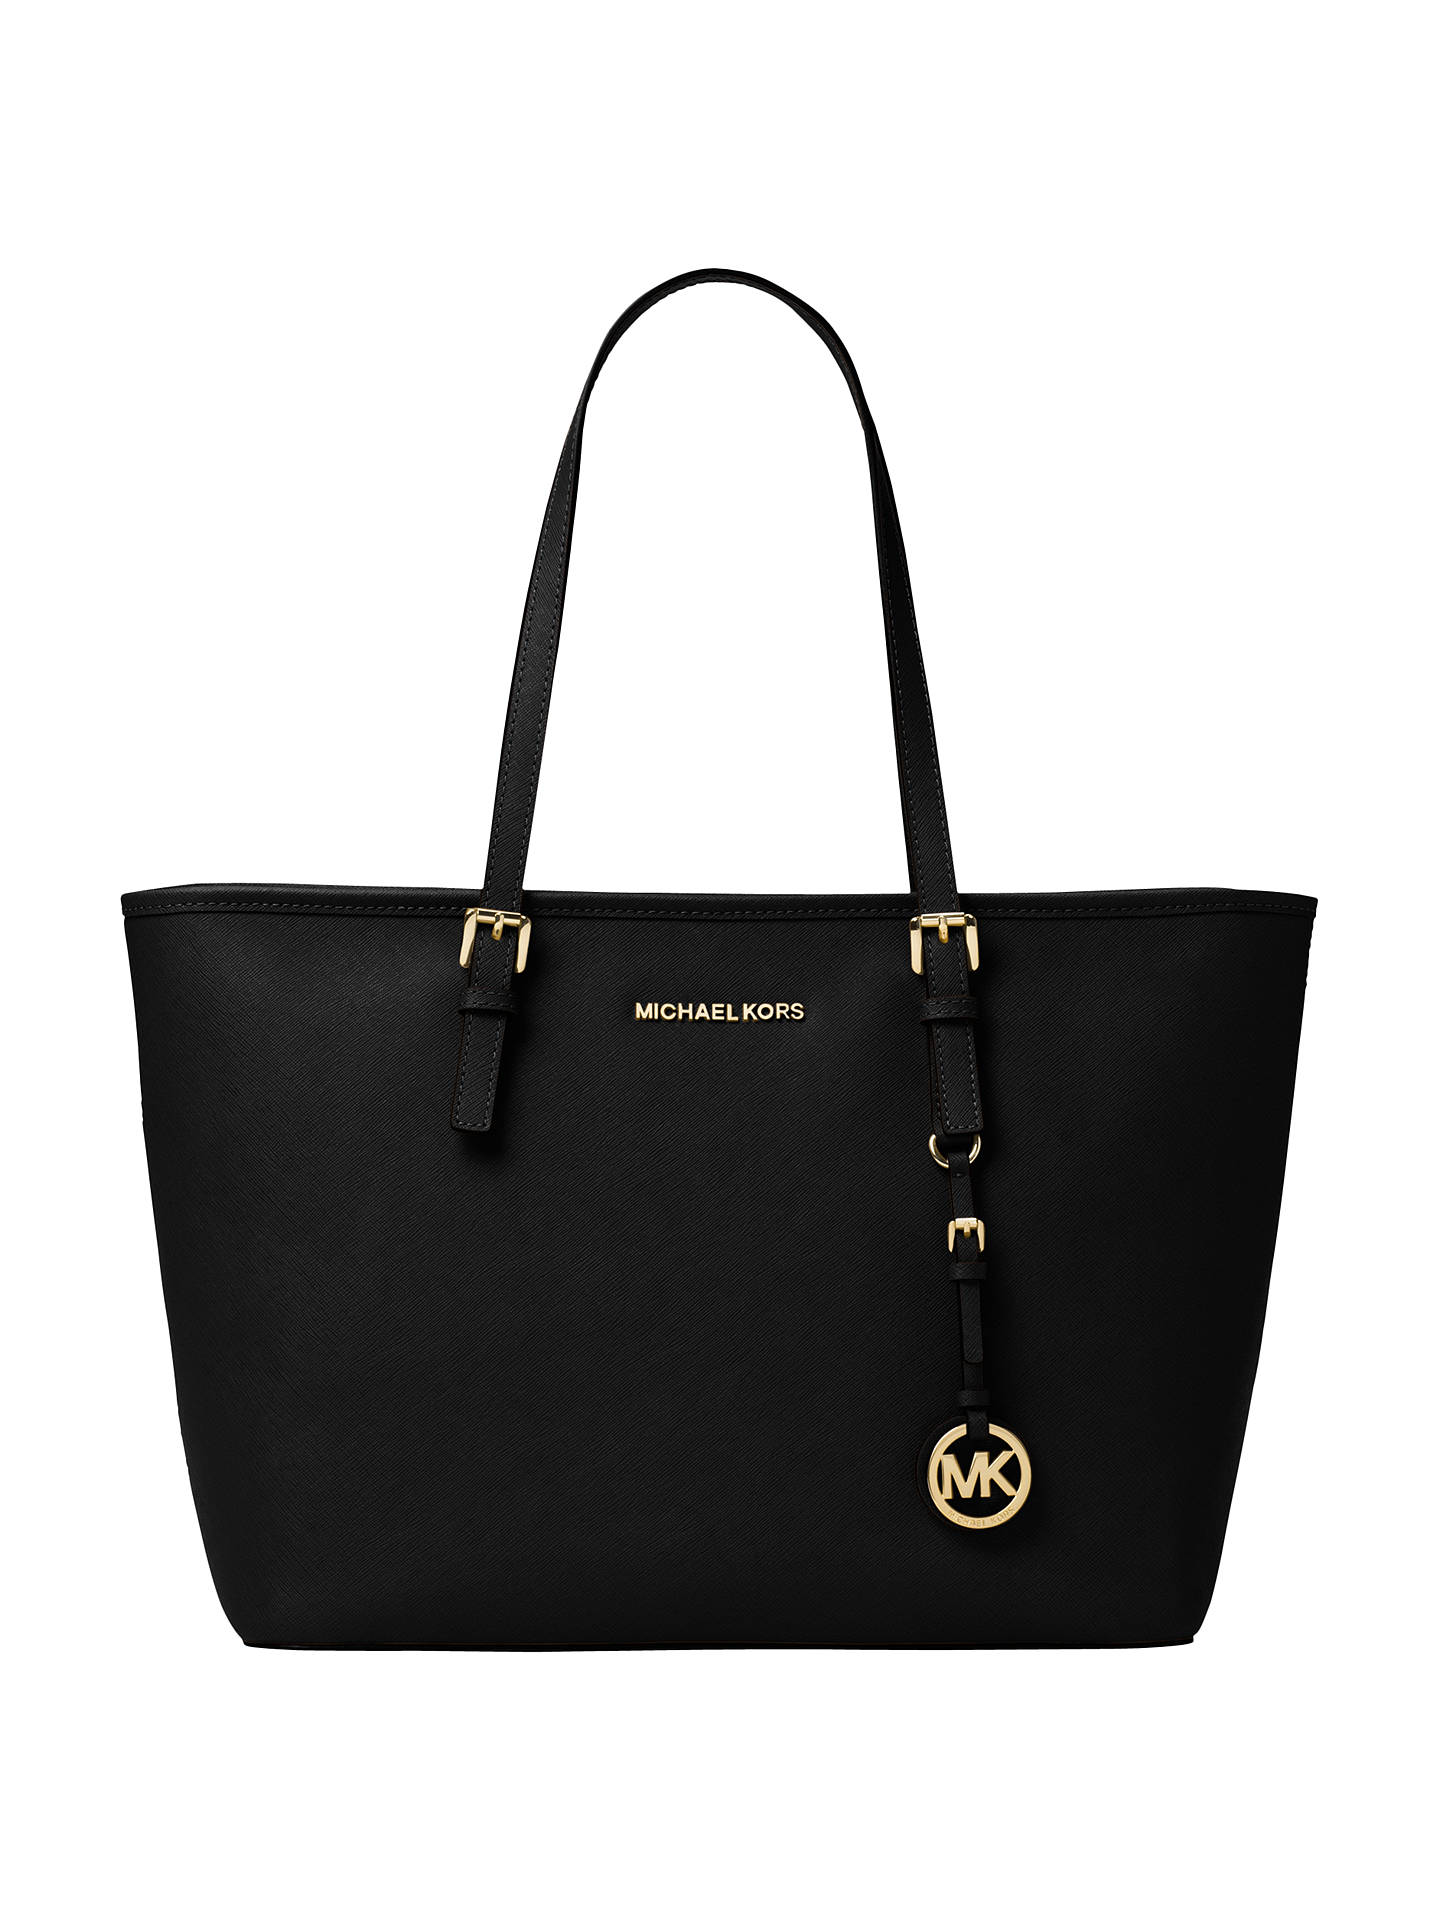 Michael Kors Jet Set Travel Saffiano Leather Tote Bag Black Online At Johnlewis